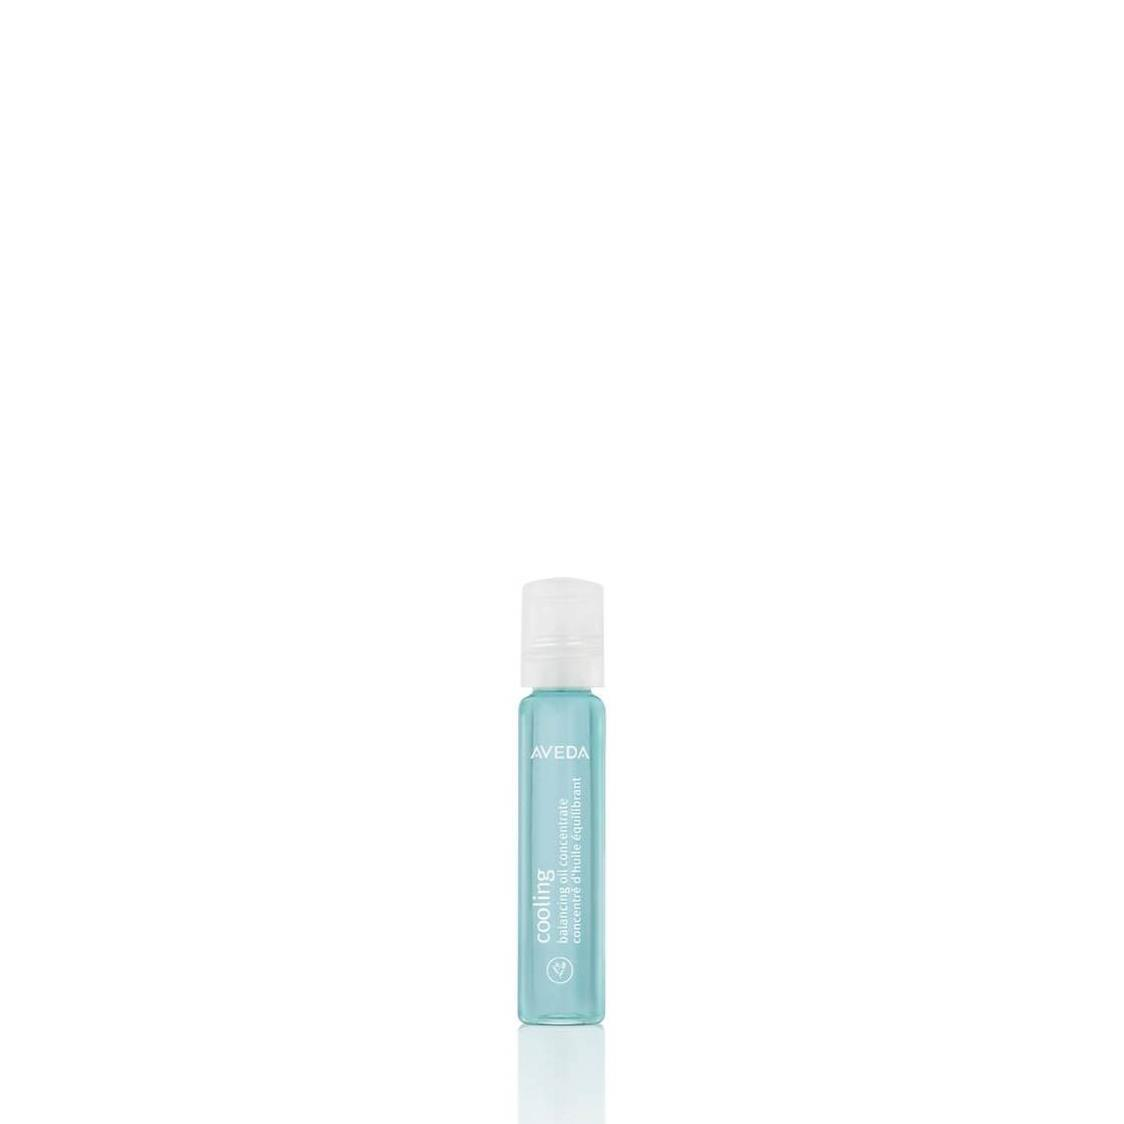 Aveda Cooling Balancing Oil Concentrate 7ml